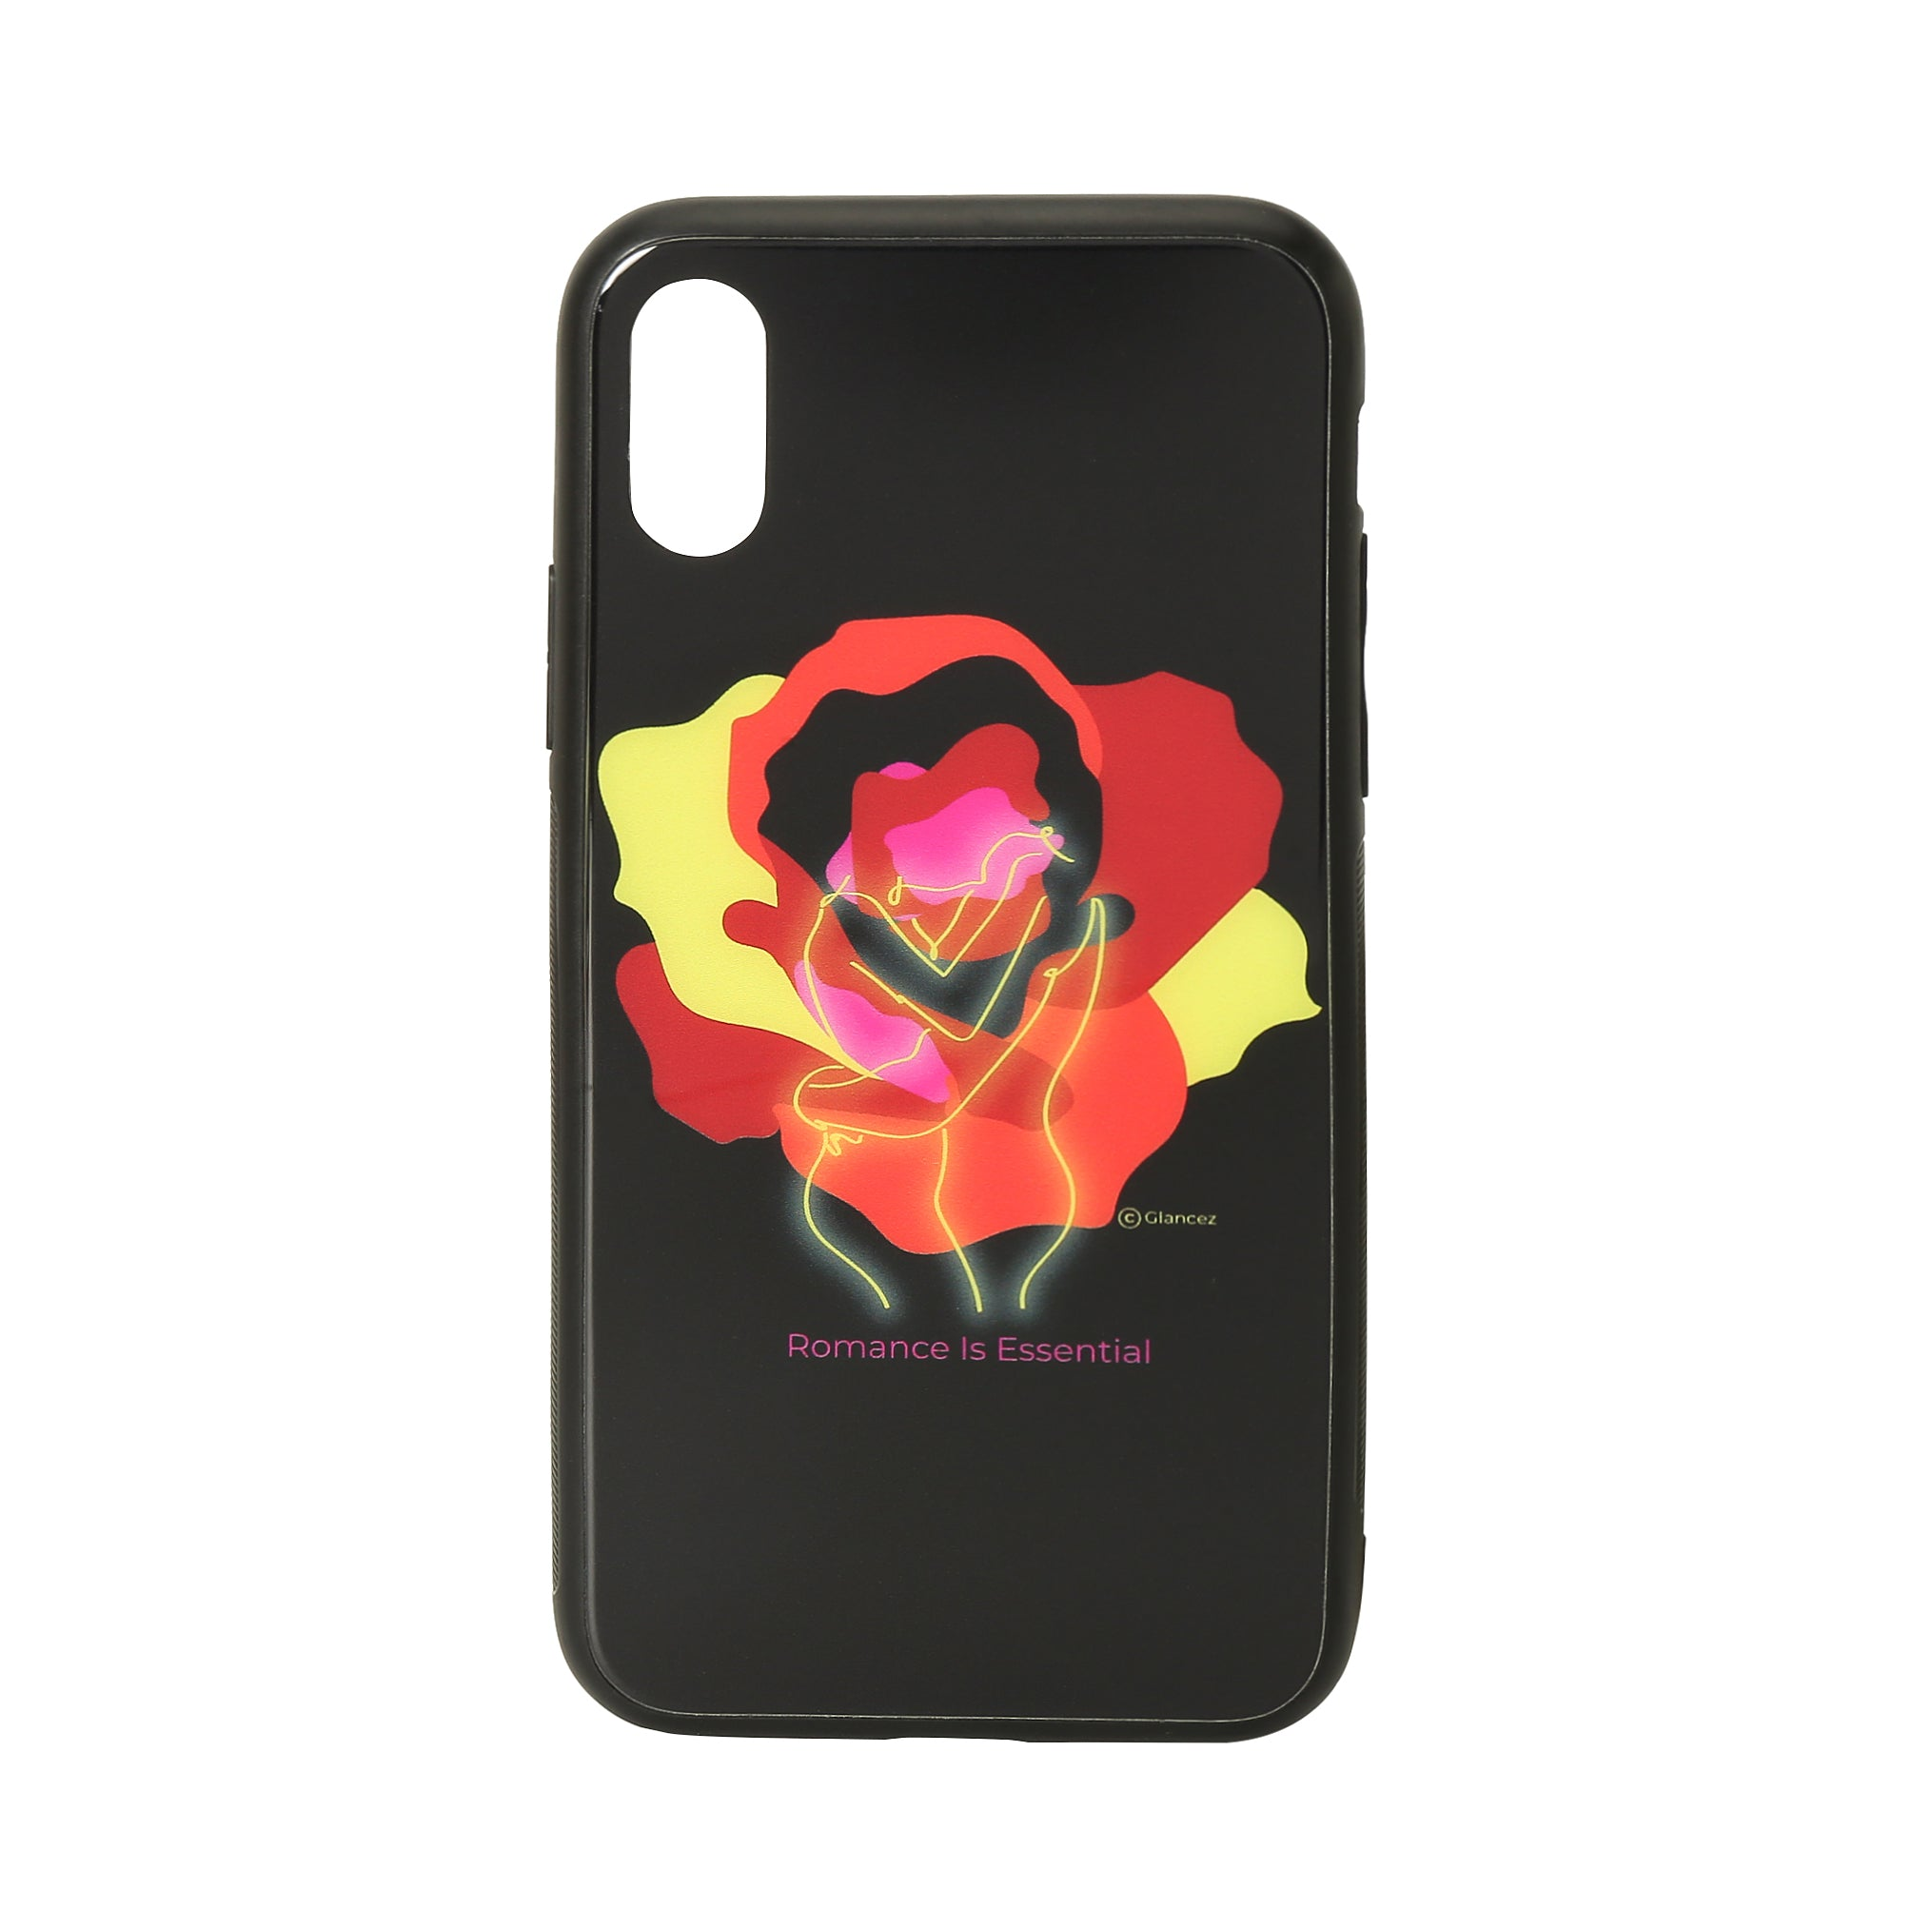 Original Romance Glass iPhone Case